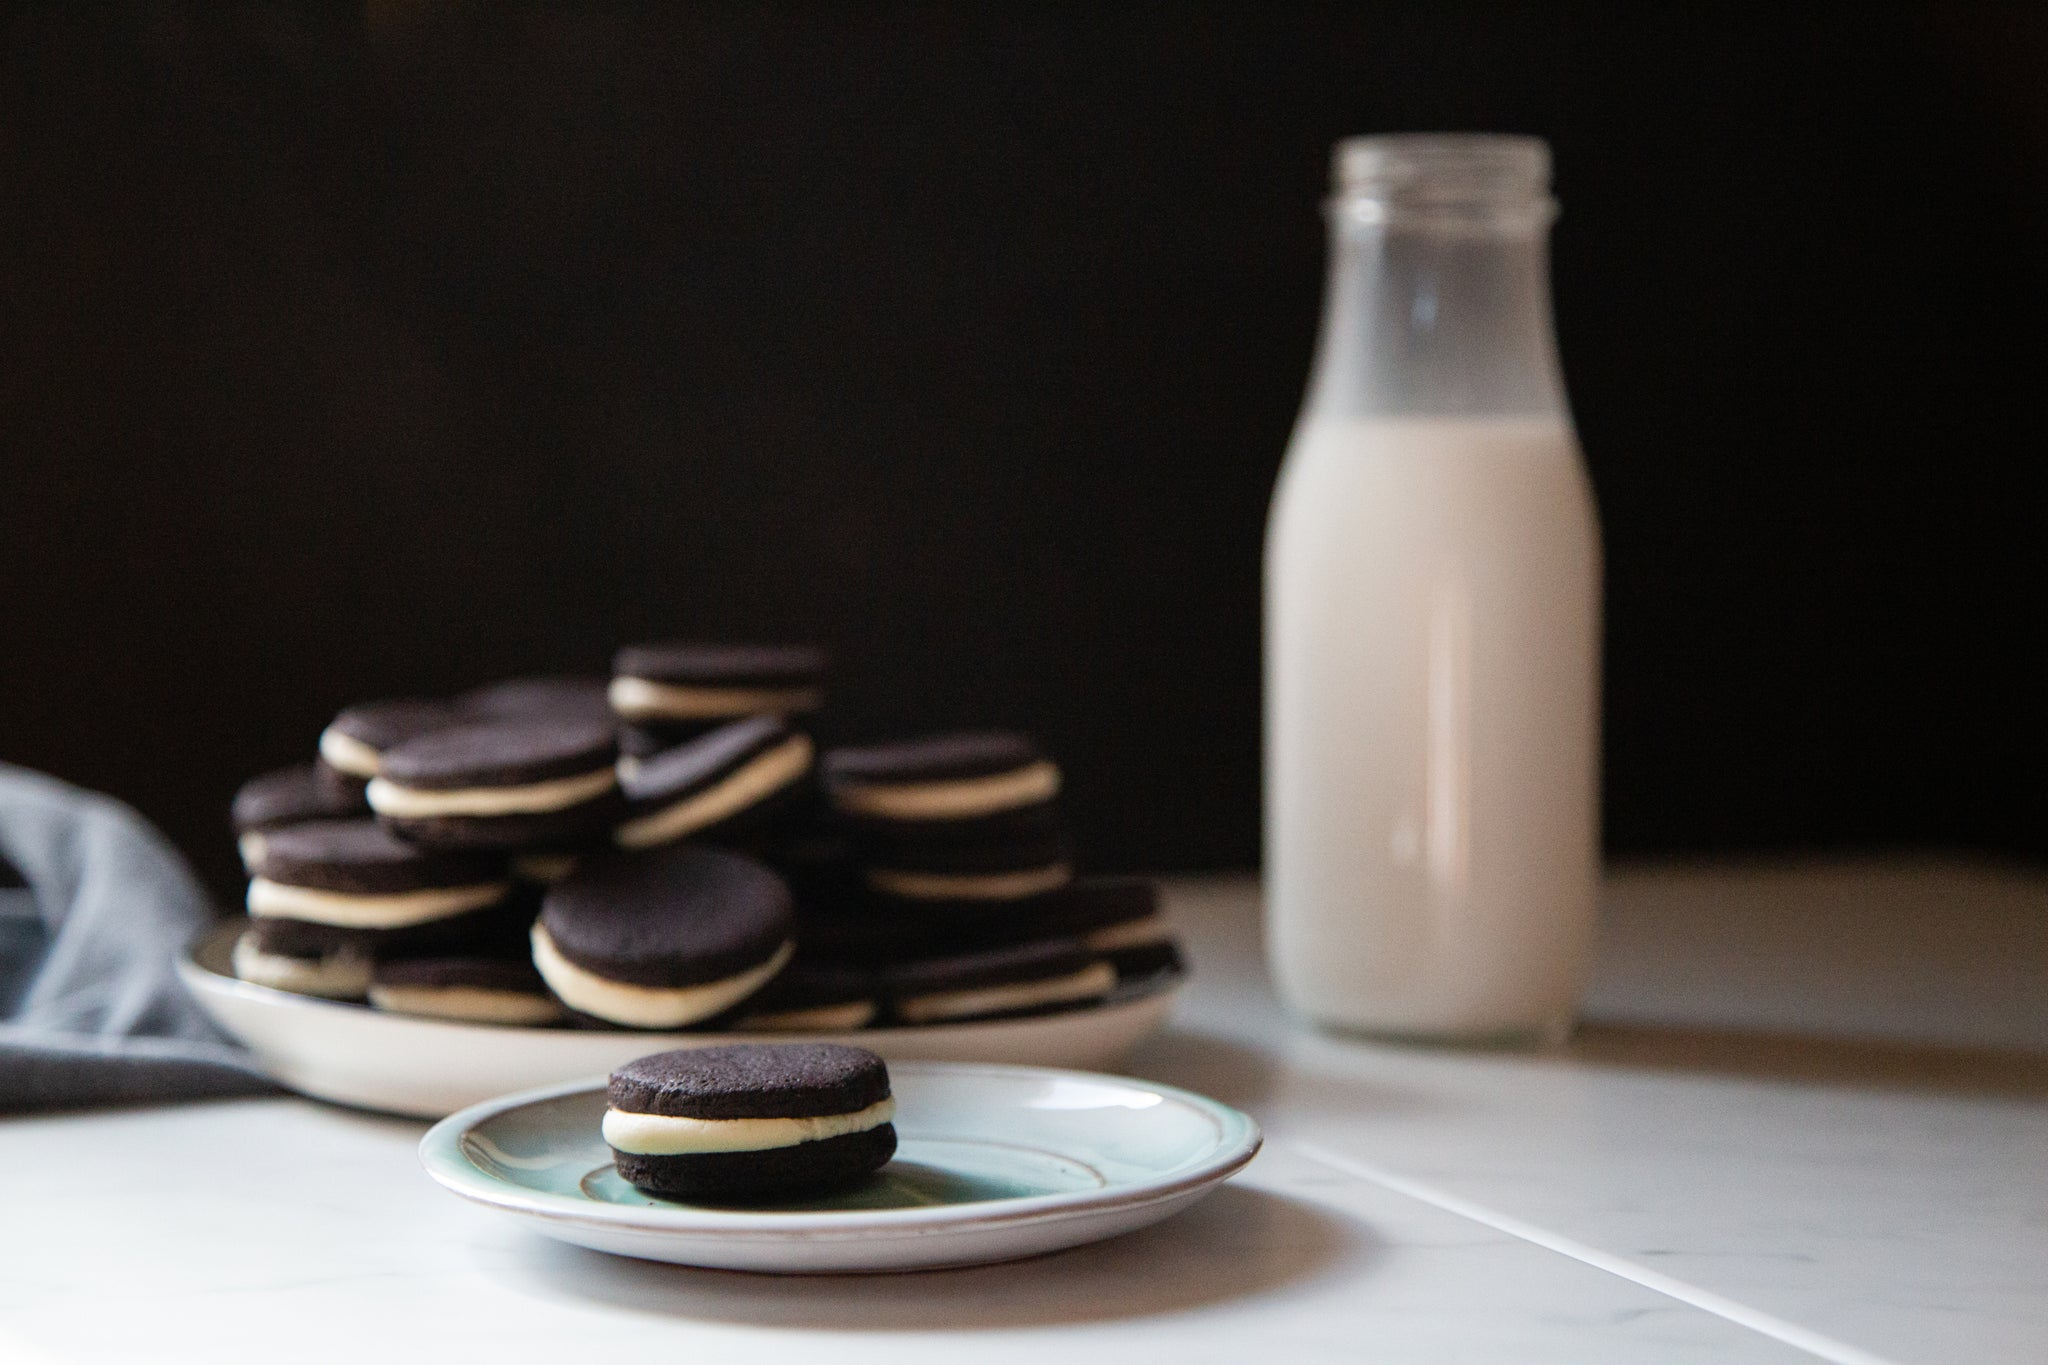 homemade oreo cookies with jar of milk on the side made using black velvet cacao powder by weirdo good